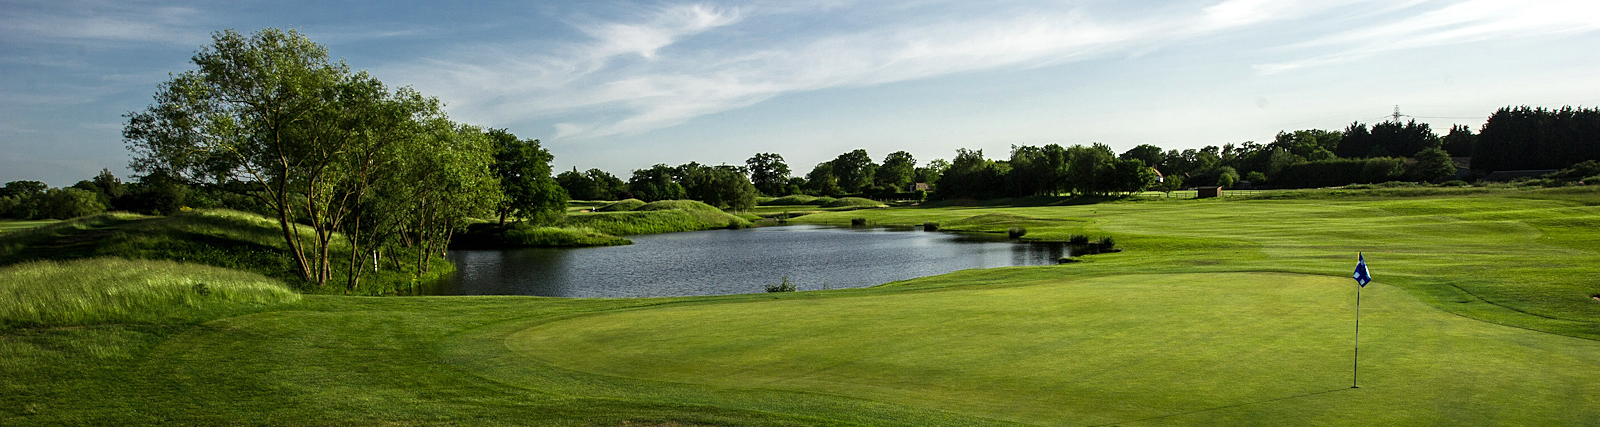 Home-golf-club-pyrford-9